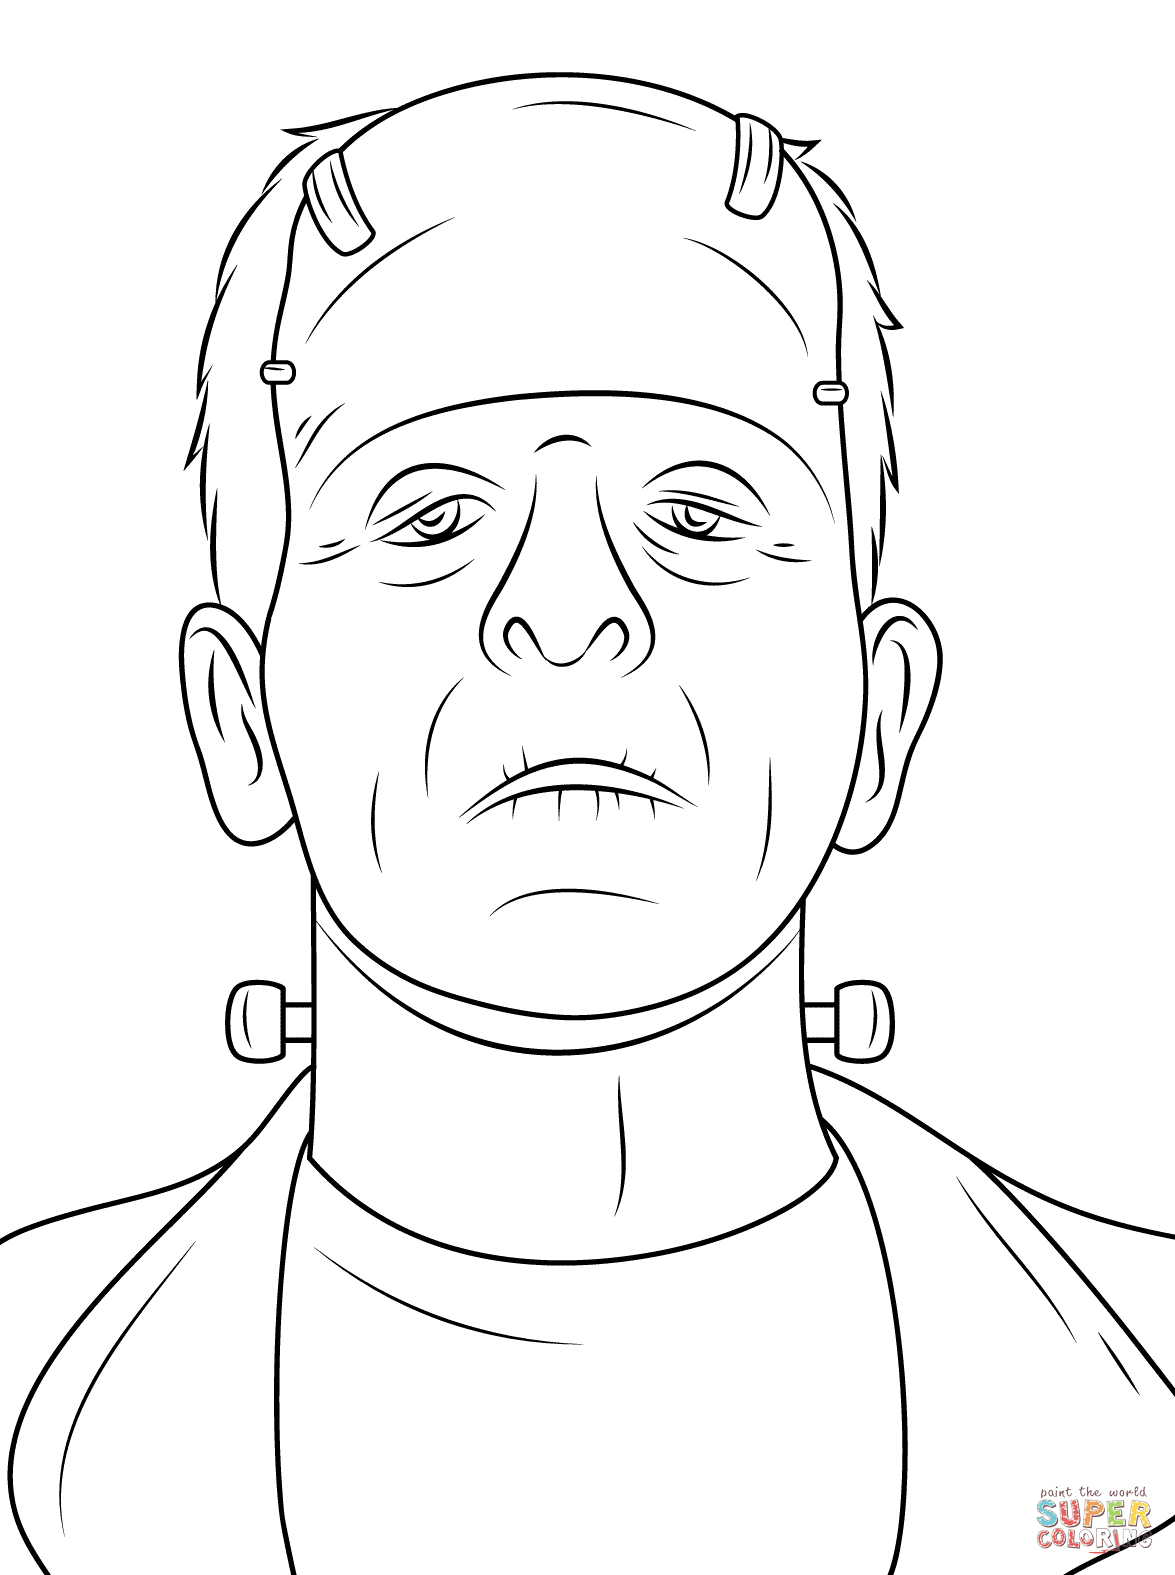 Halloween Frankenstein Coloring Pages Scary Frankenstein Head Coloring Page Free Printable Coloring Pages